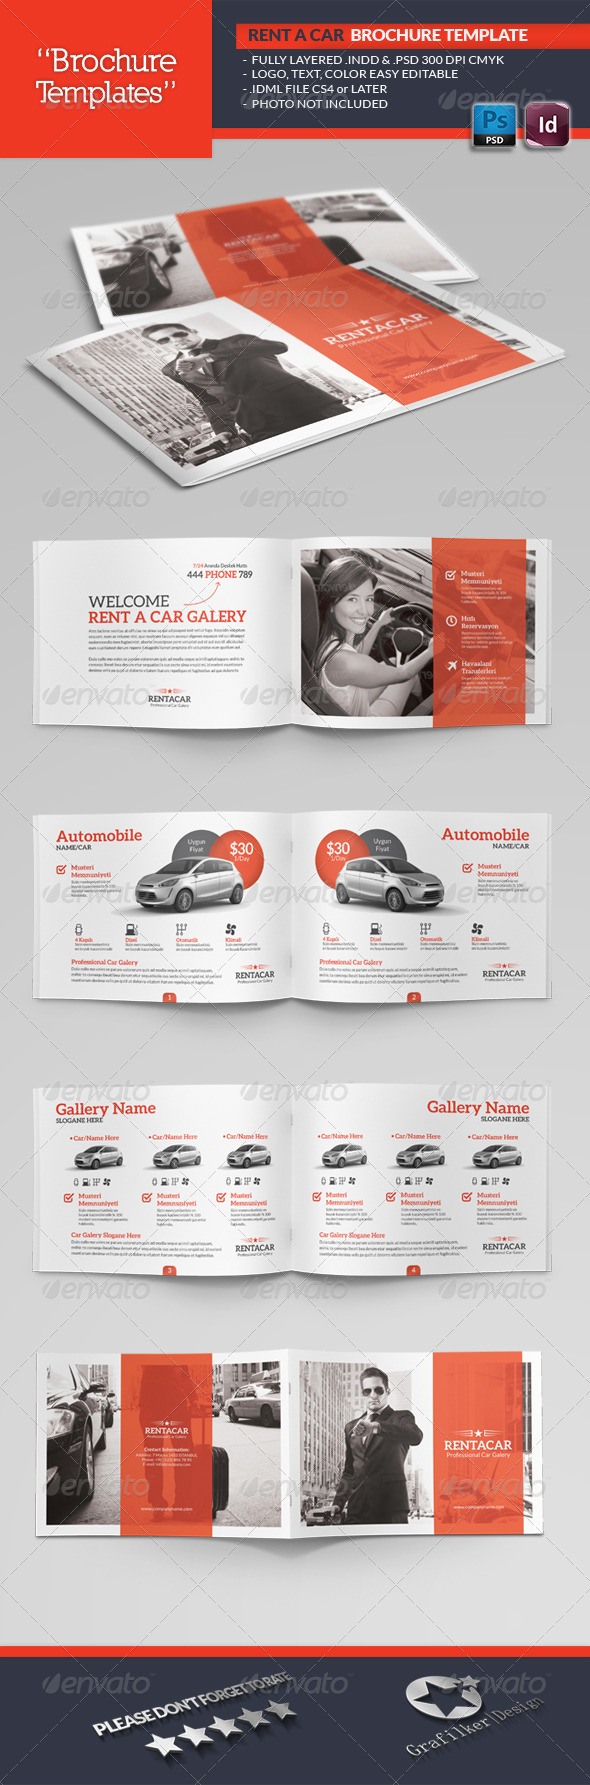 rent a car brochure template catalogs brochures